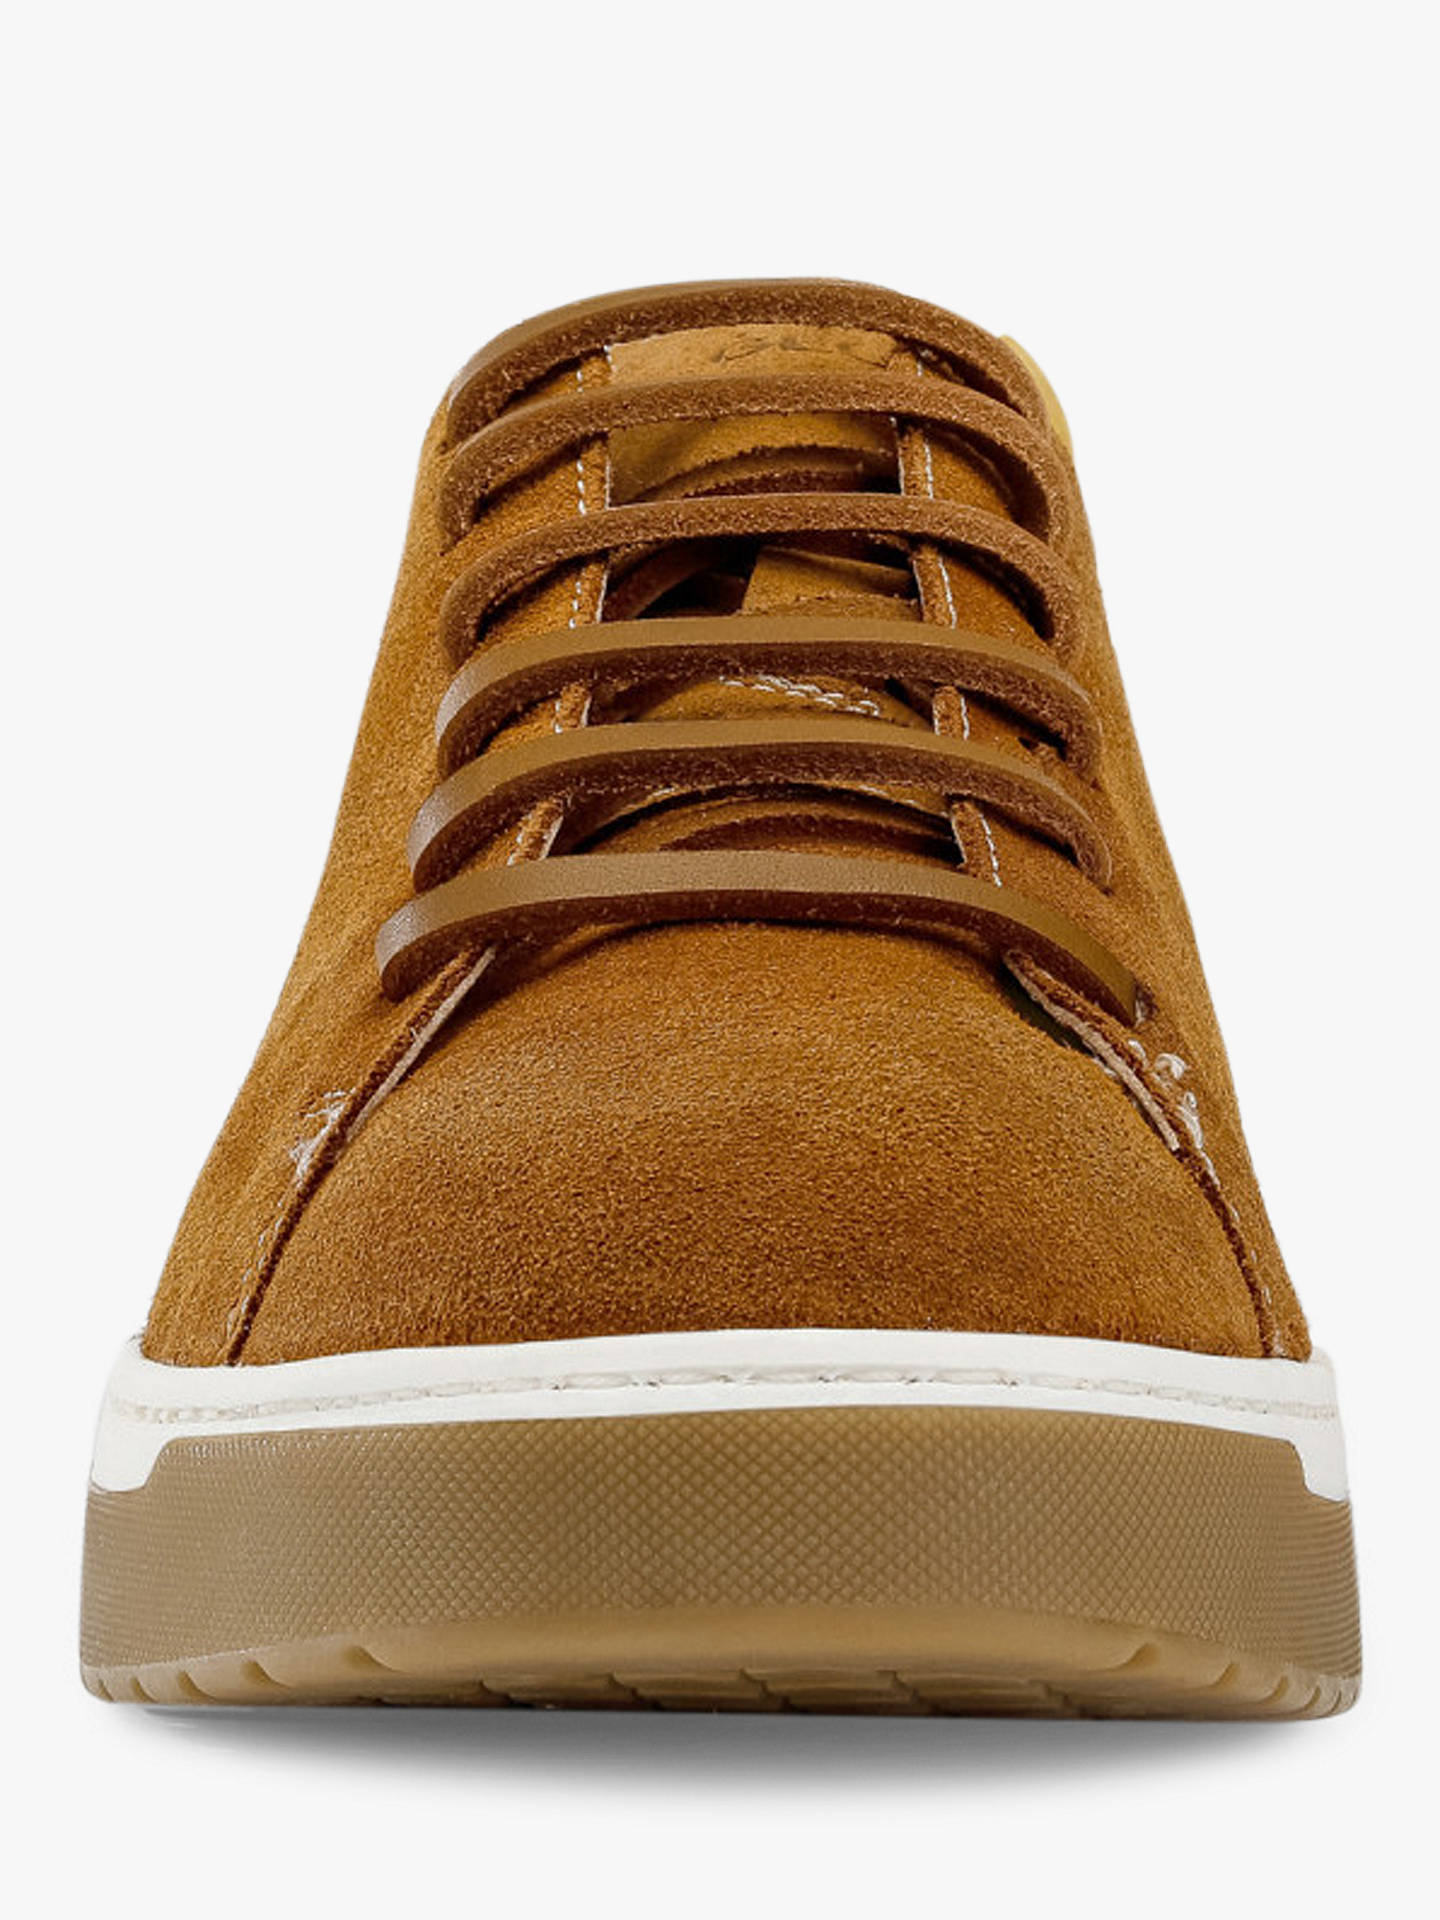 Buy Geox Women's Kapha Lace Up Trainers, Curry Leather, 3 Online at johnlewis.com